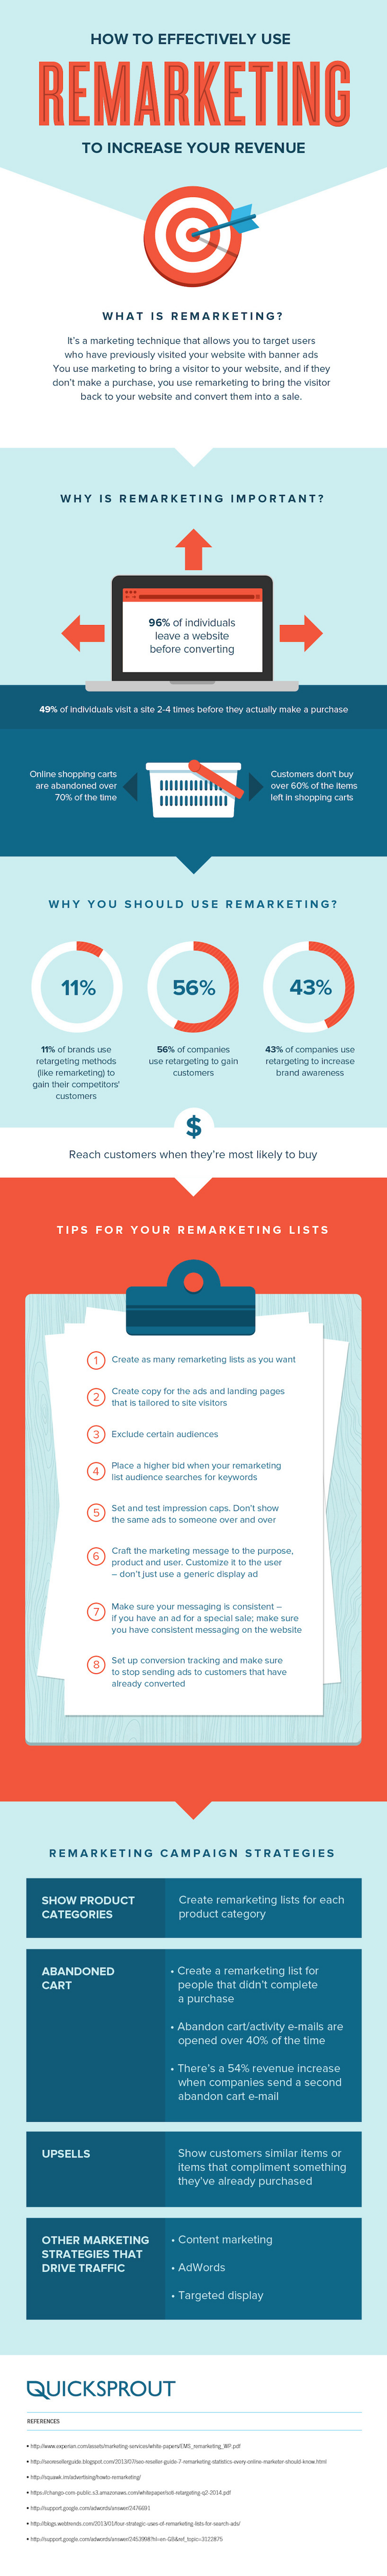 Remarketing-Tips